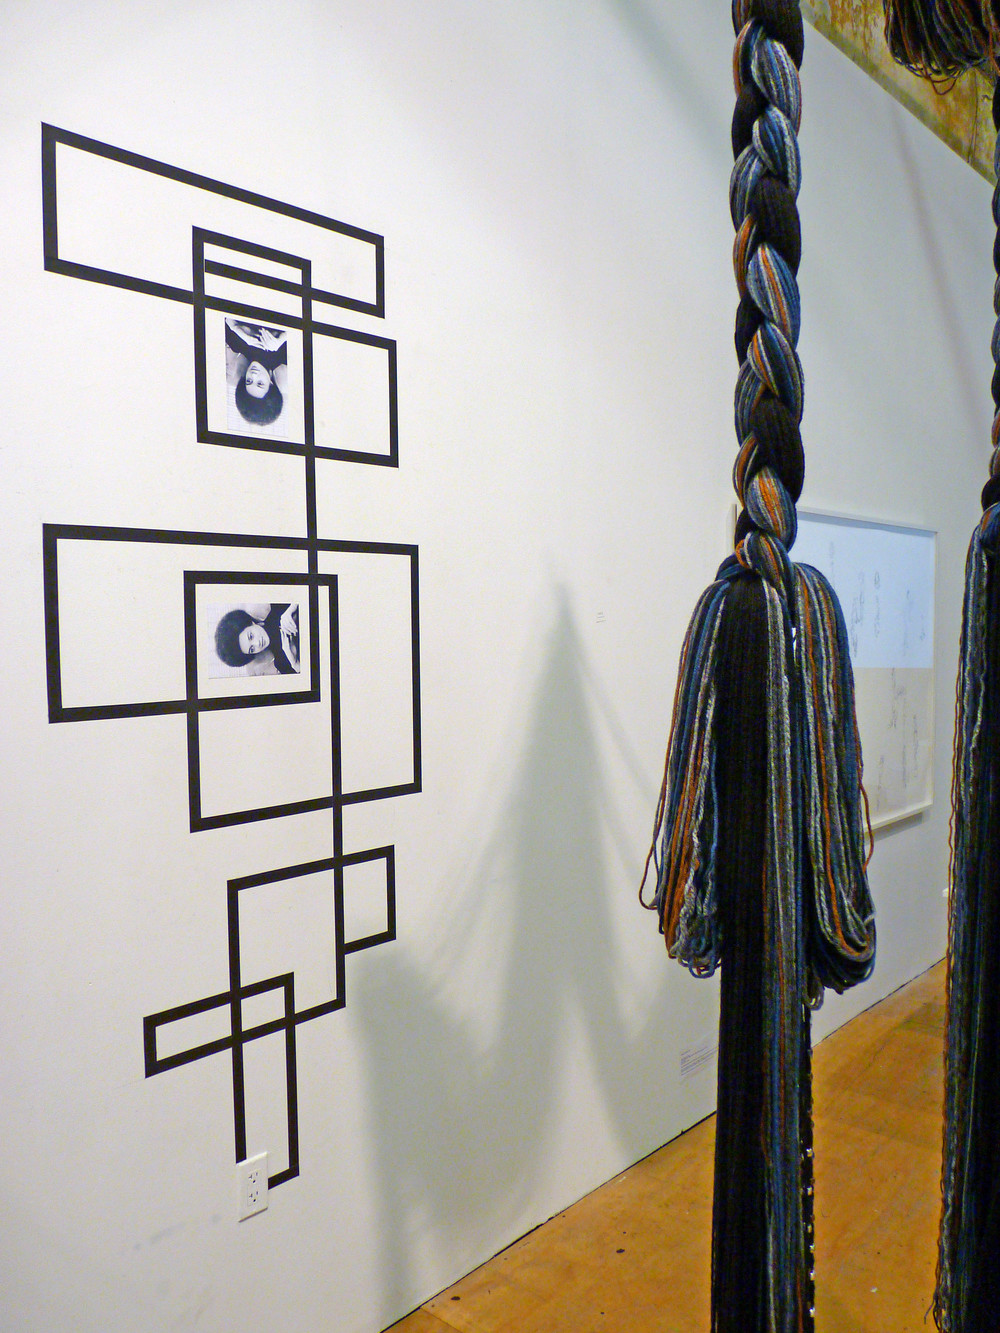 Rico Gatson and Ellie Murphy Untitled, 2010, Gaffers tape, inkjet prints, Acrylic and wool yarn, plastic pony beads, monofilament fishing line, 3' x 11' x 3' (Detail from Collective Show)